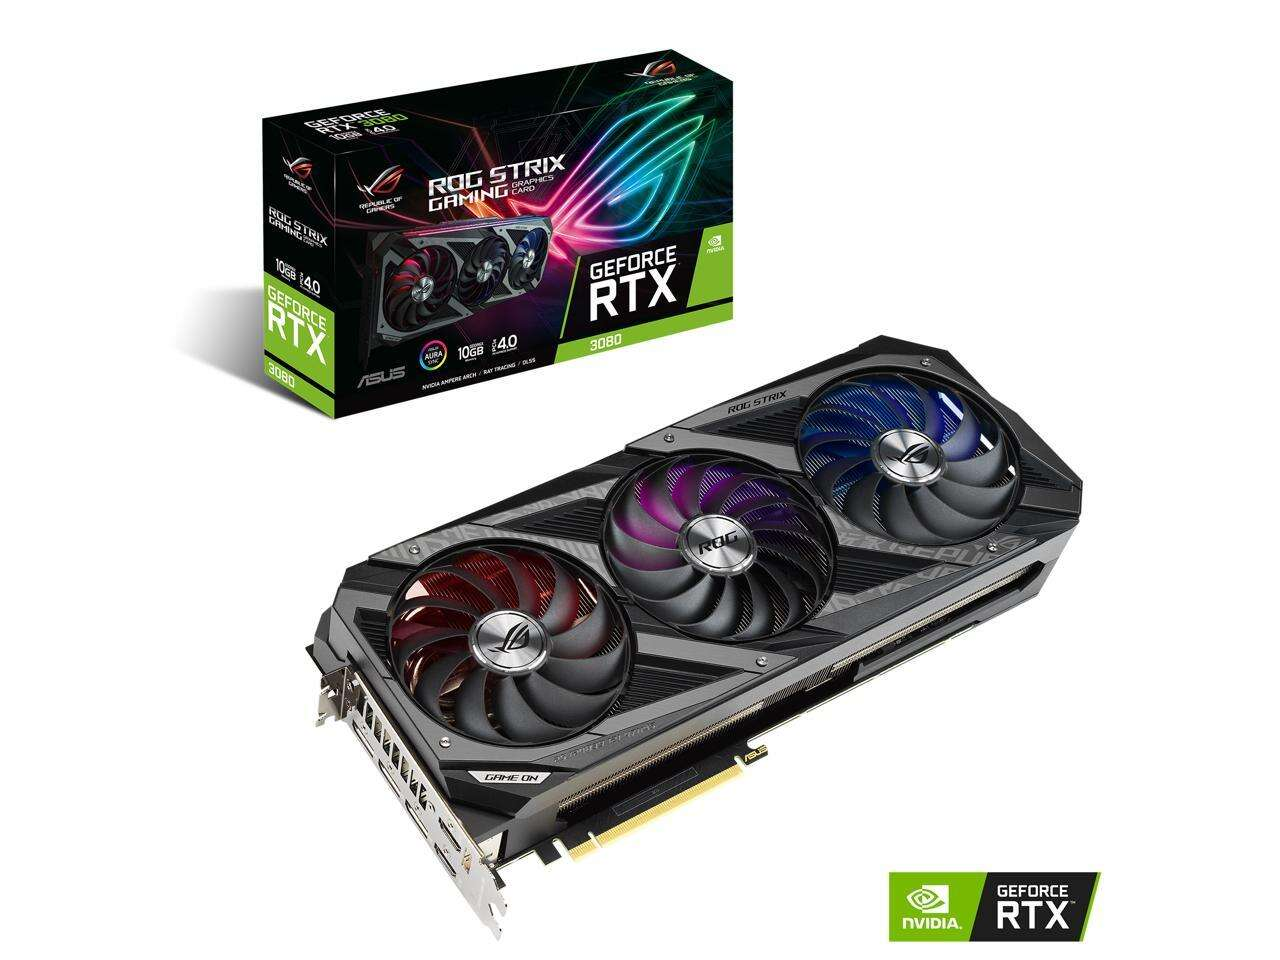 ASUS ROG Strix GeForce RTX 3080 DirectX 12 GAMING 10GB BACKORDER